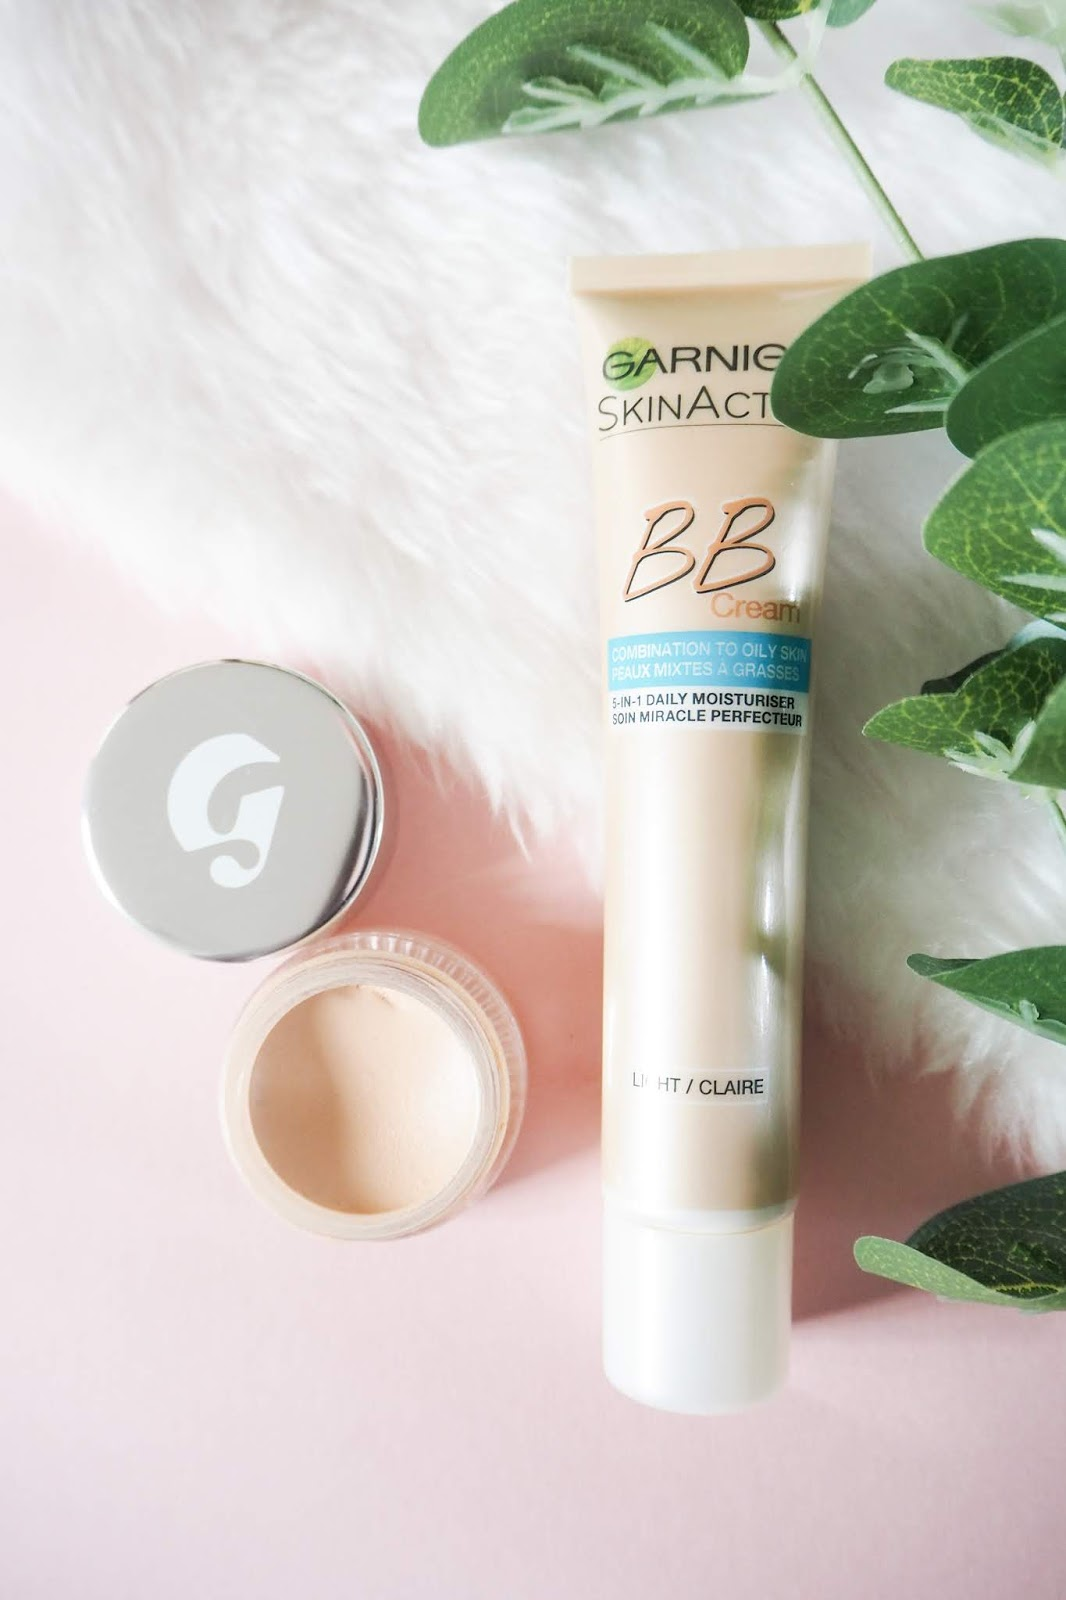 Gym Makeup - Garnier CC Cream in Light and Glossier Stretch Concealer in Light Review